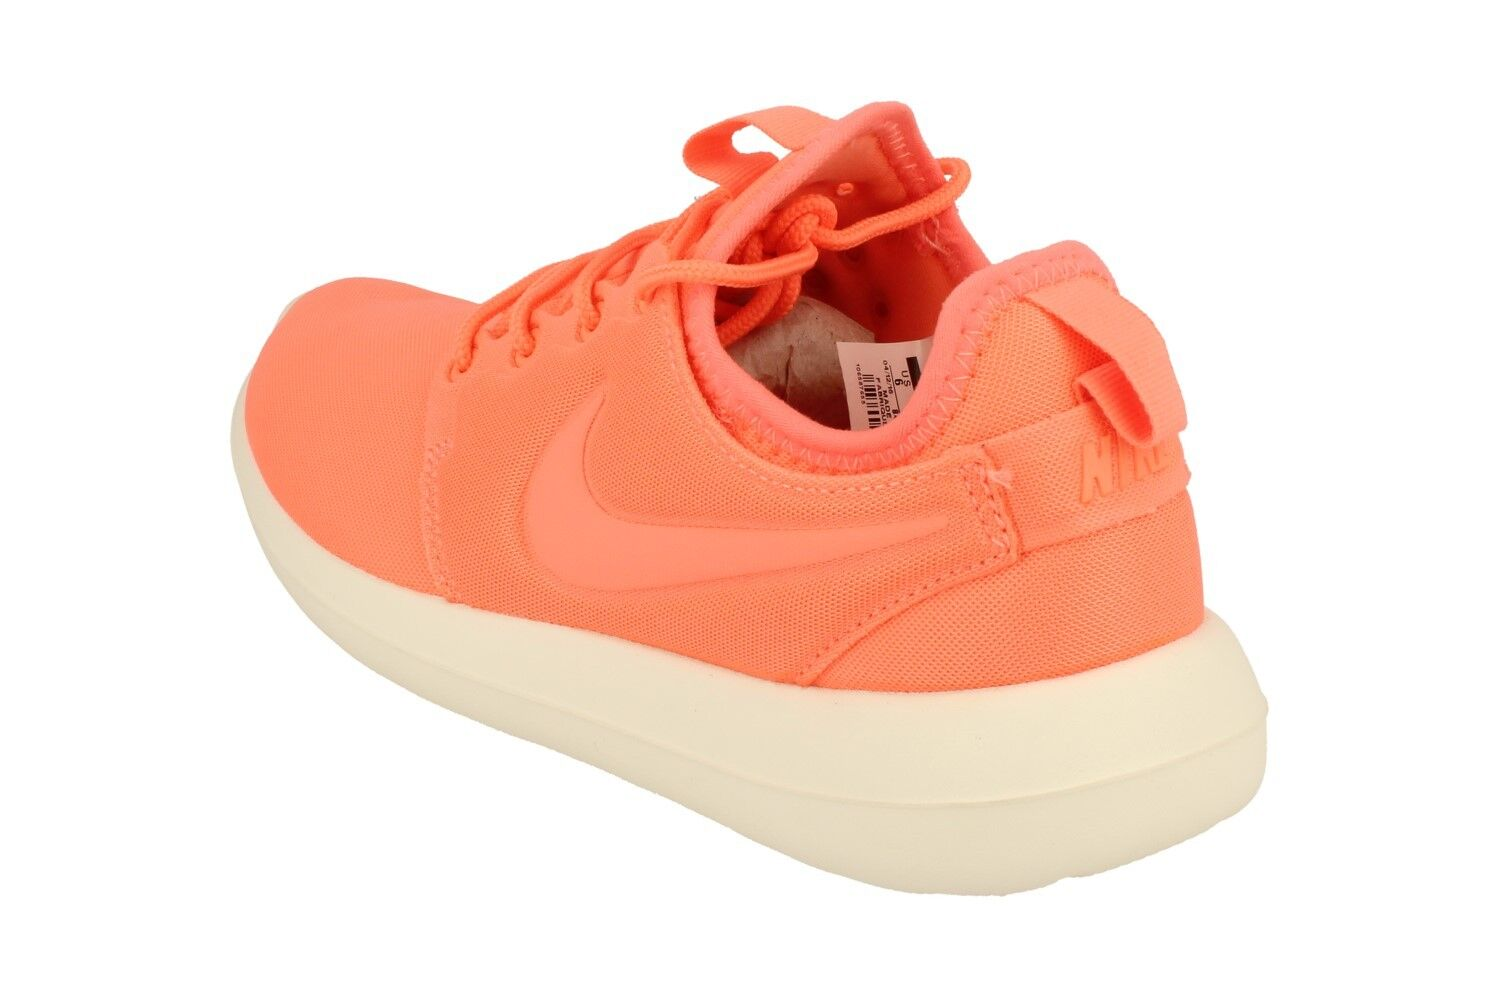 Nike Mujer Roshe 844931 Sneakers Two Running Trainers 844931 Roshe Sneakers 2f50ad